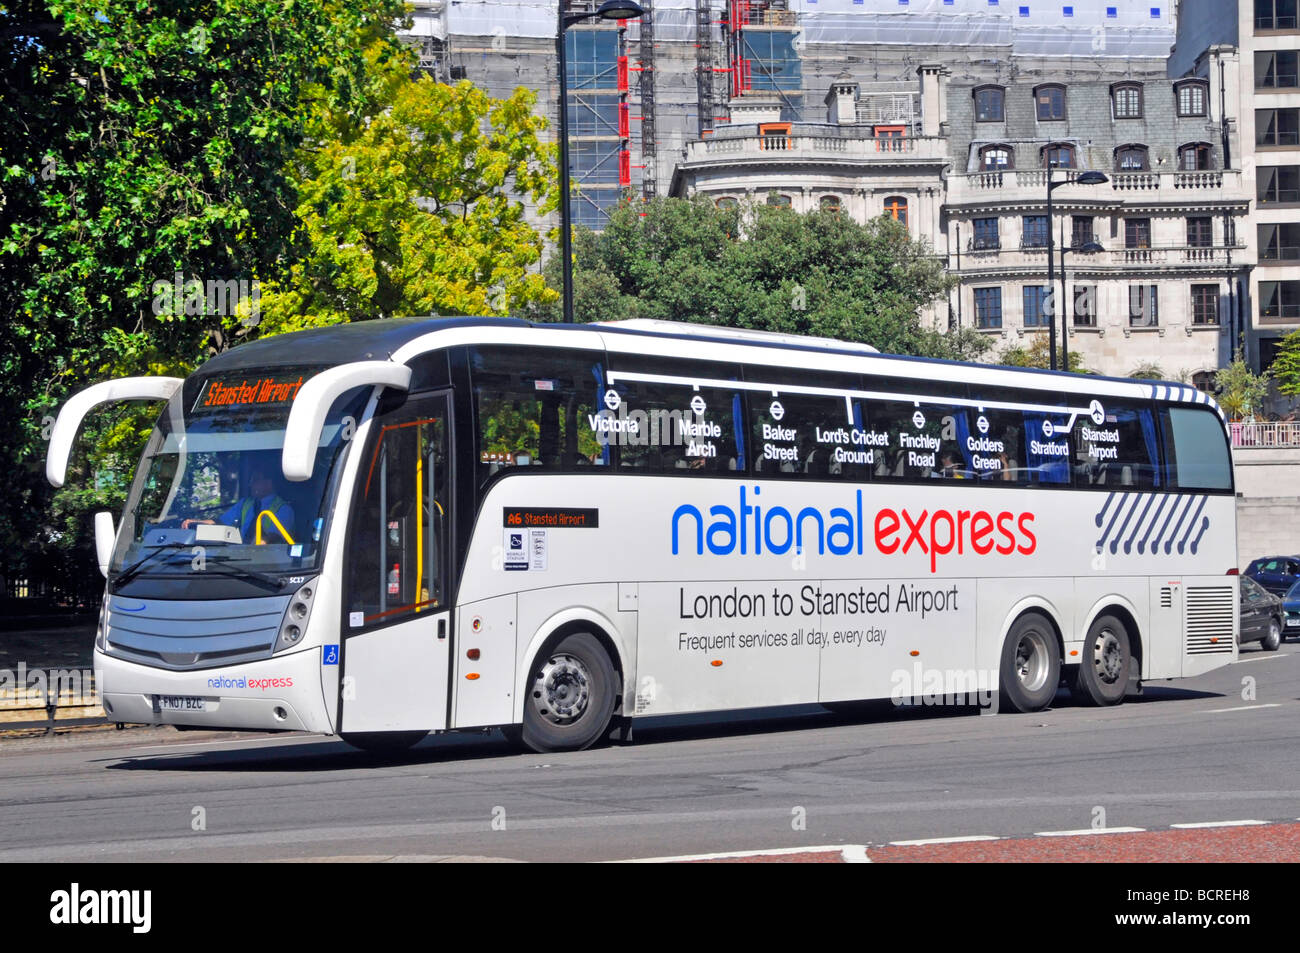 National Express Coach en Park Lane Londres Imagen De Stock